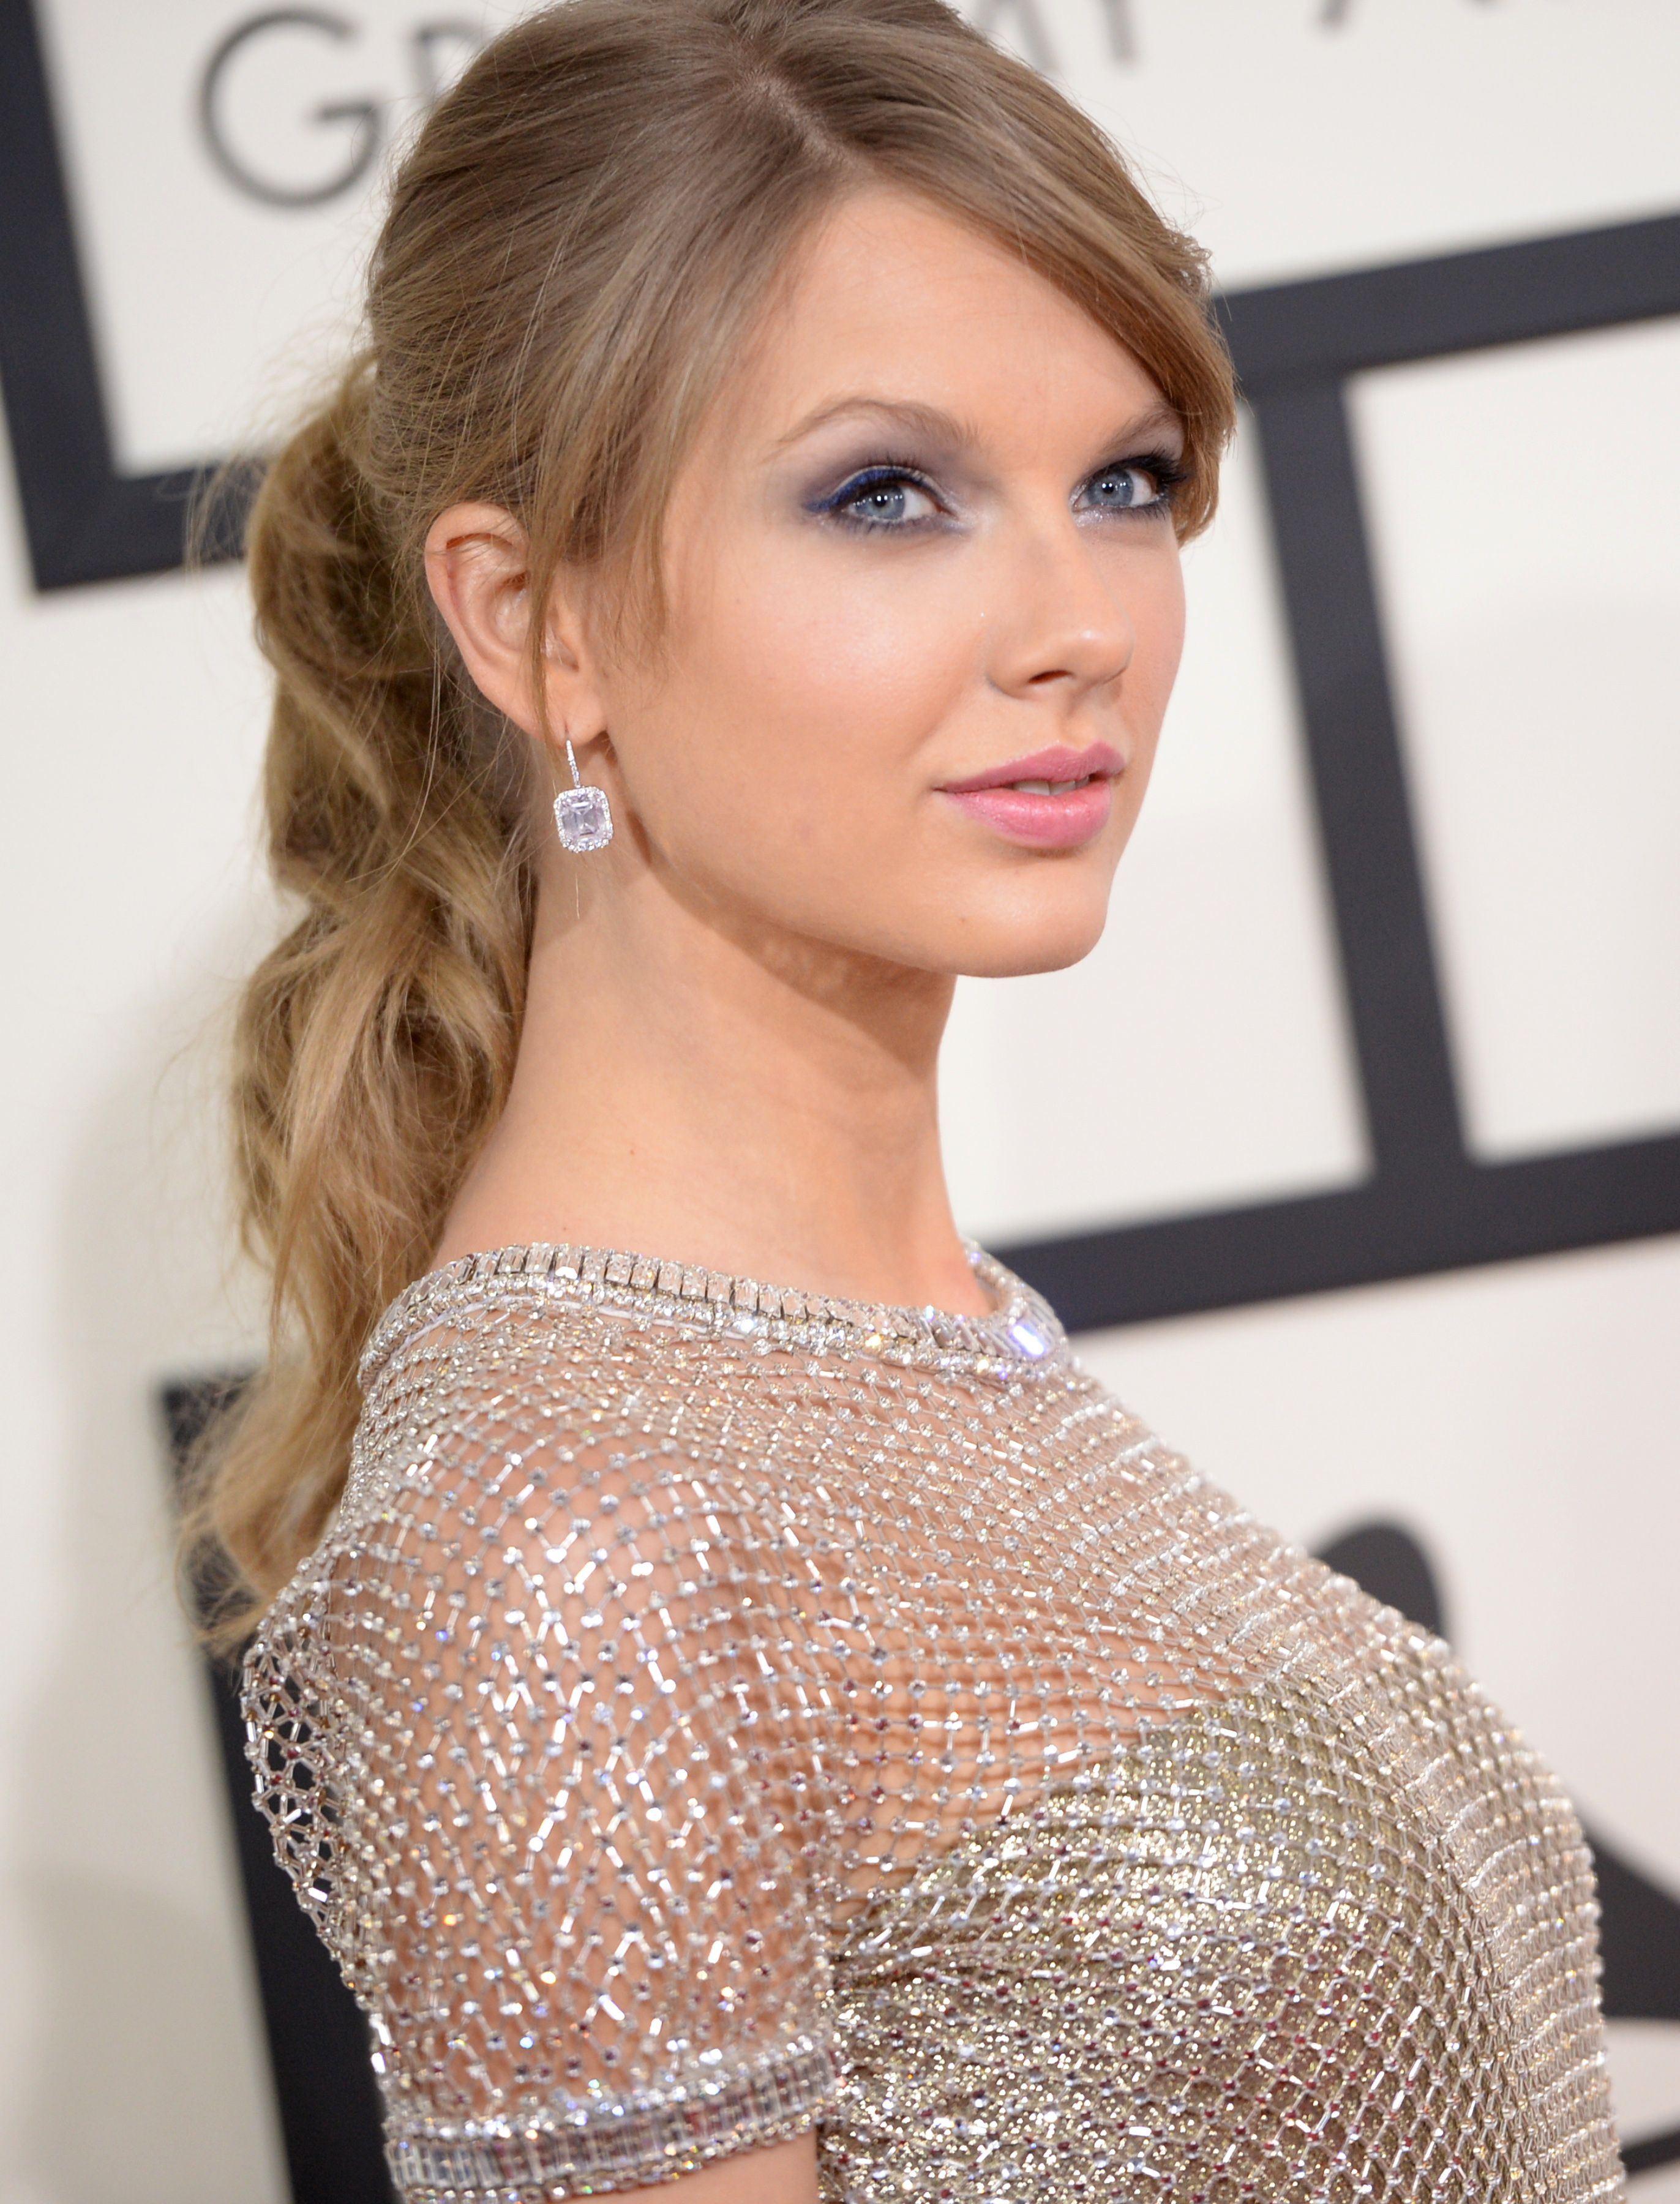 2019 year look- Awards grammy hairstyles and makeup